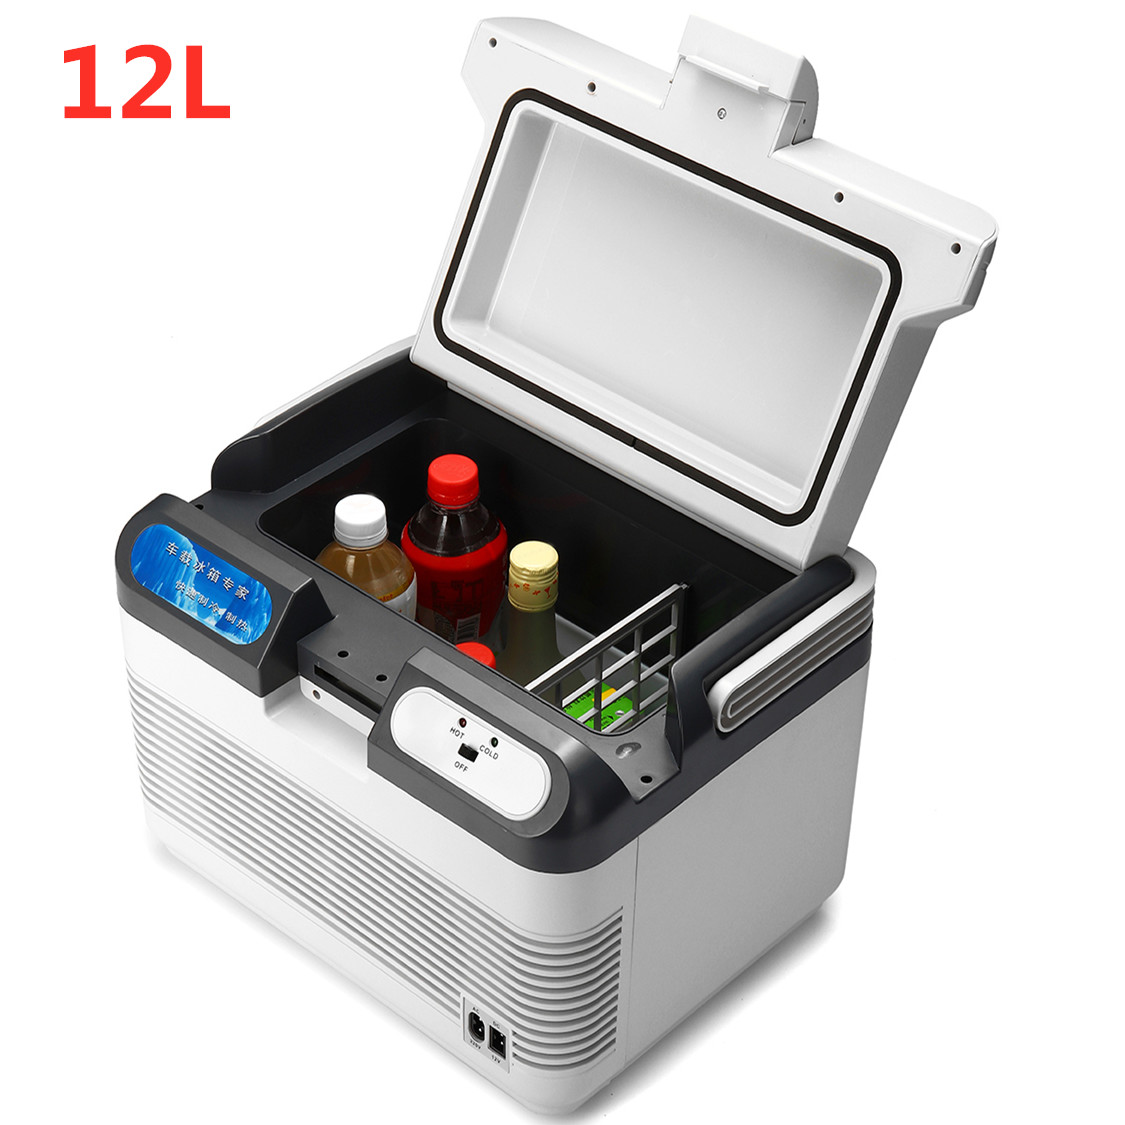 Mini Fridge Warmer Compressor Auto-Refrigerator Portable Camping 12L 12V 10-65-Degree title=